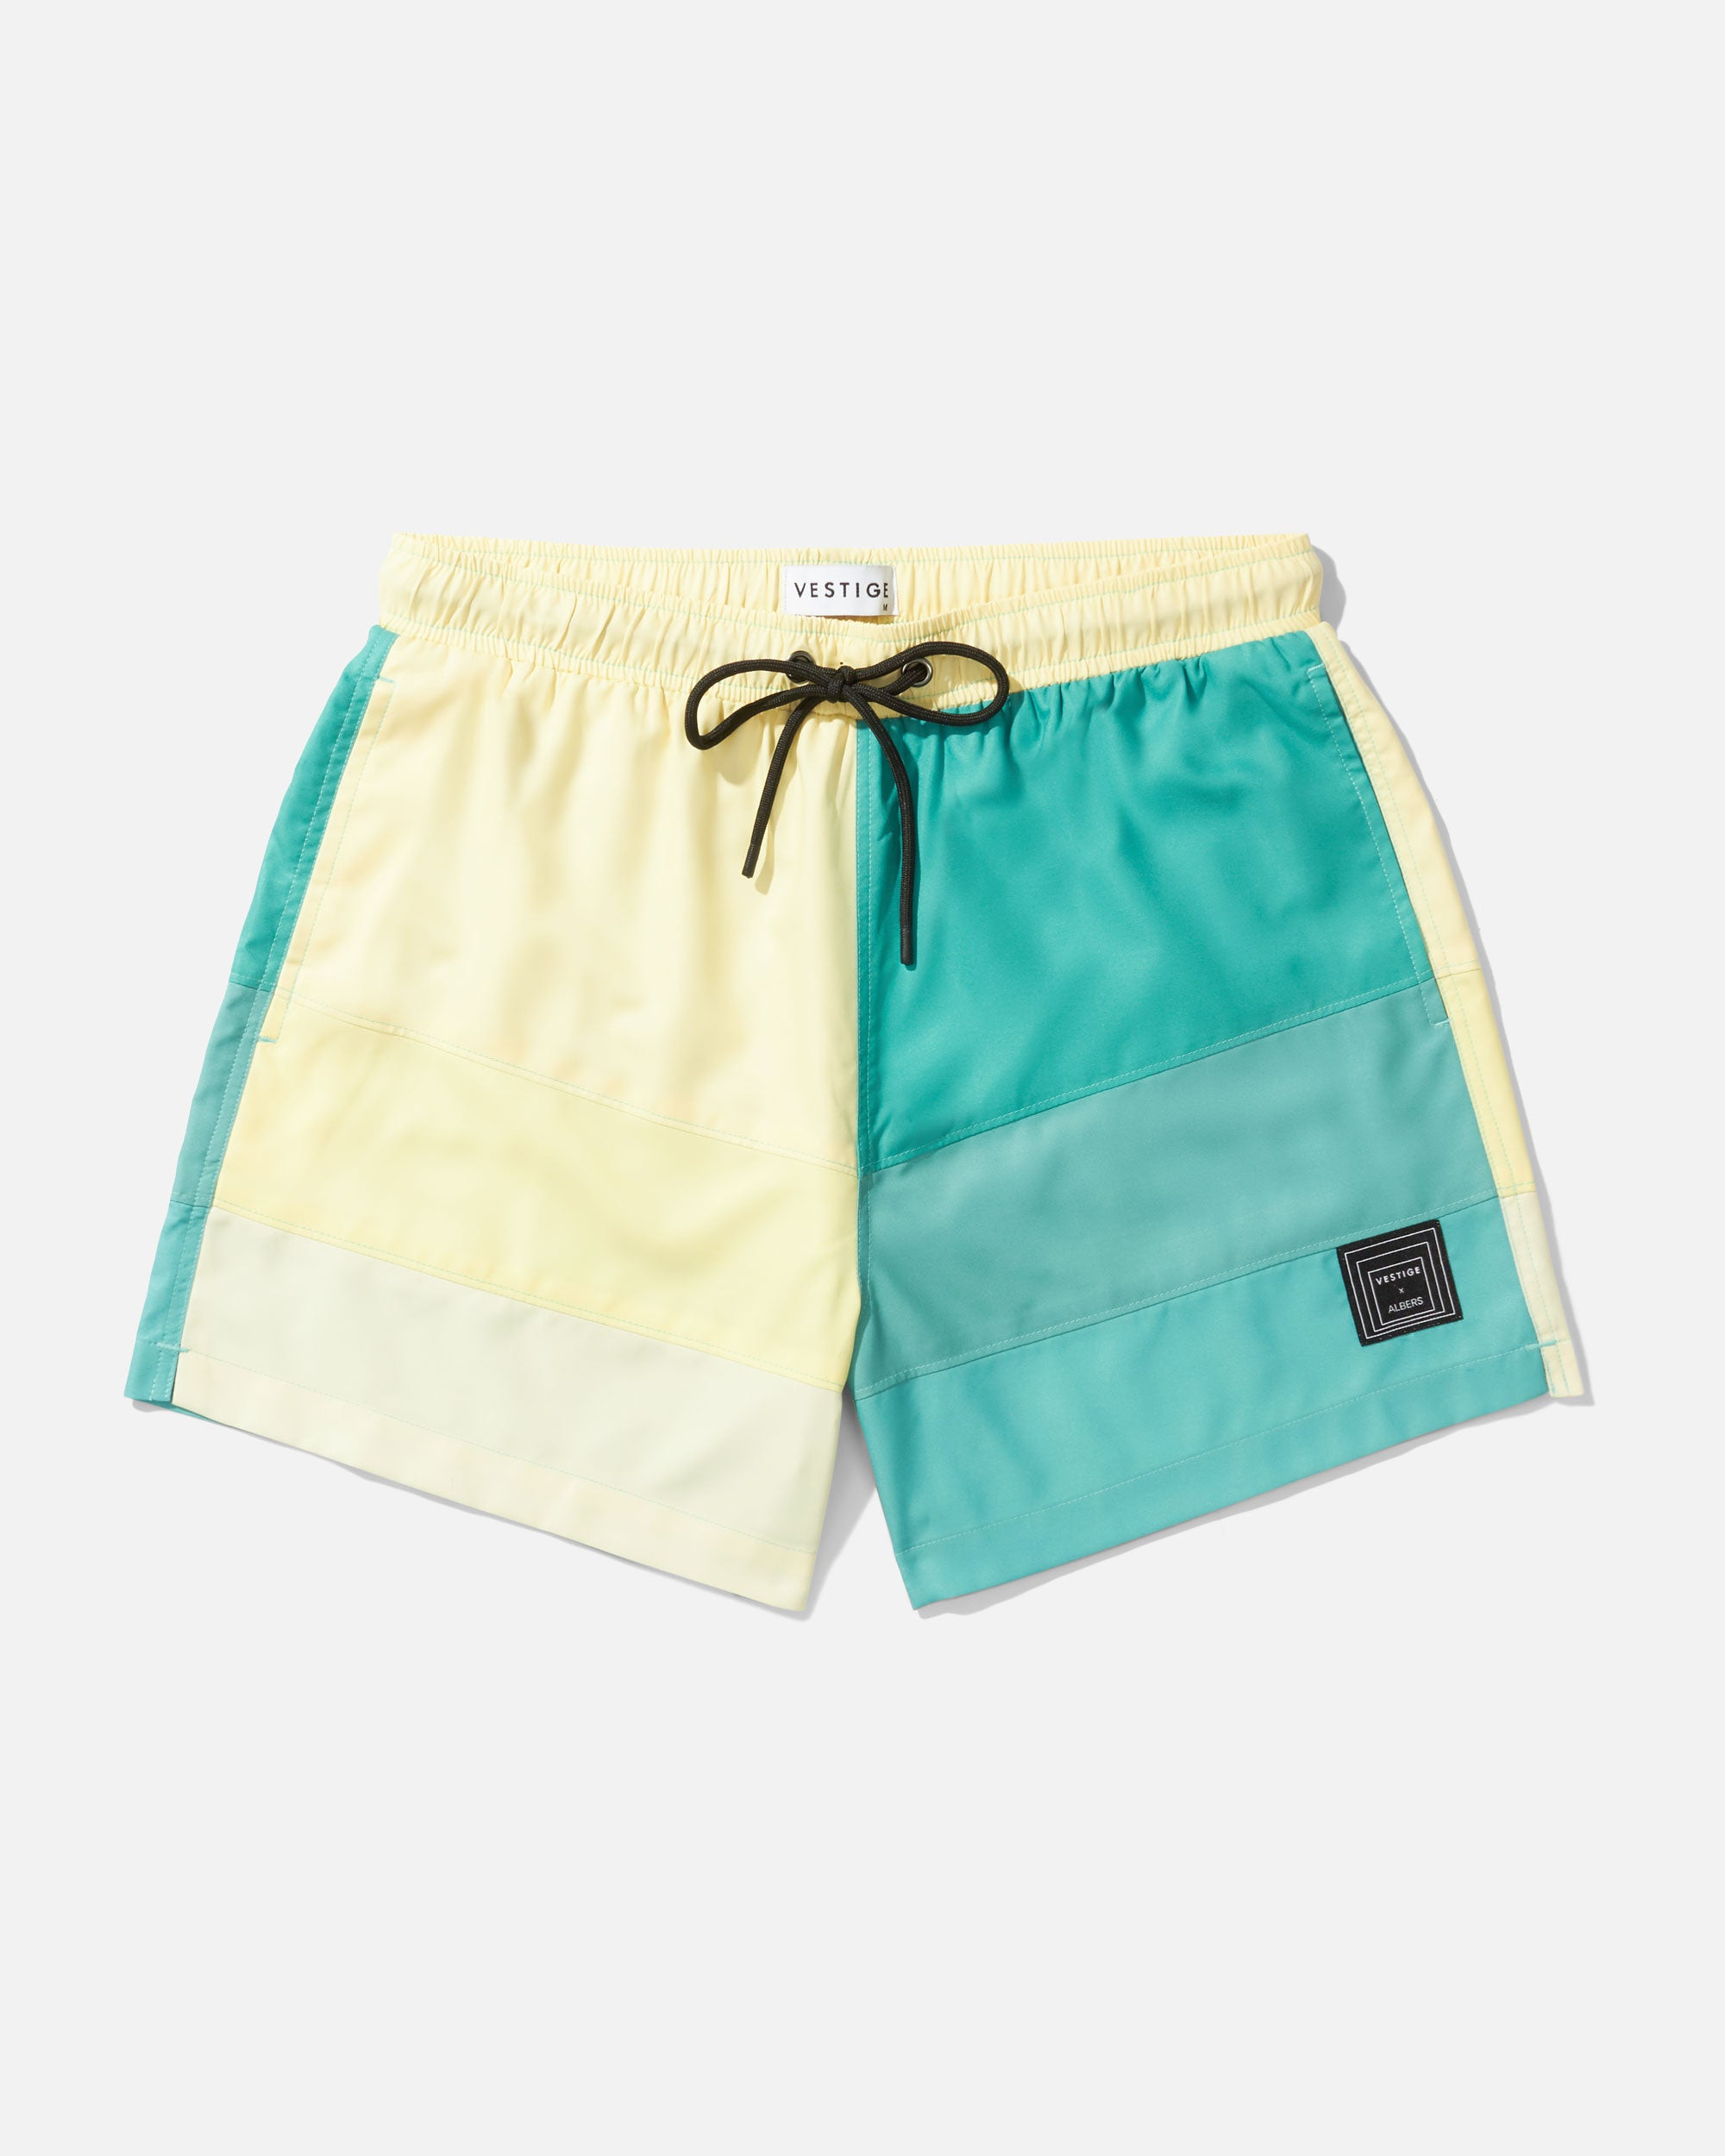 Square Color Block Swim Short, Green